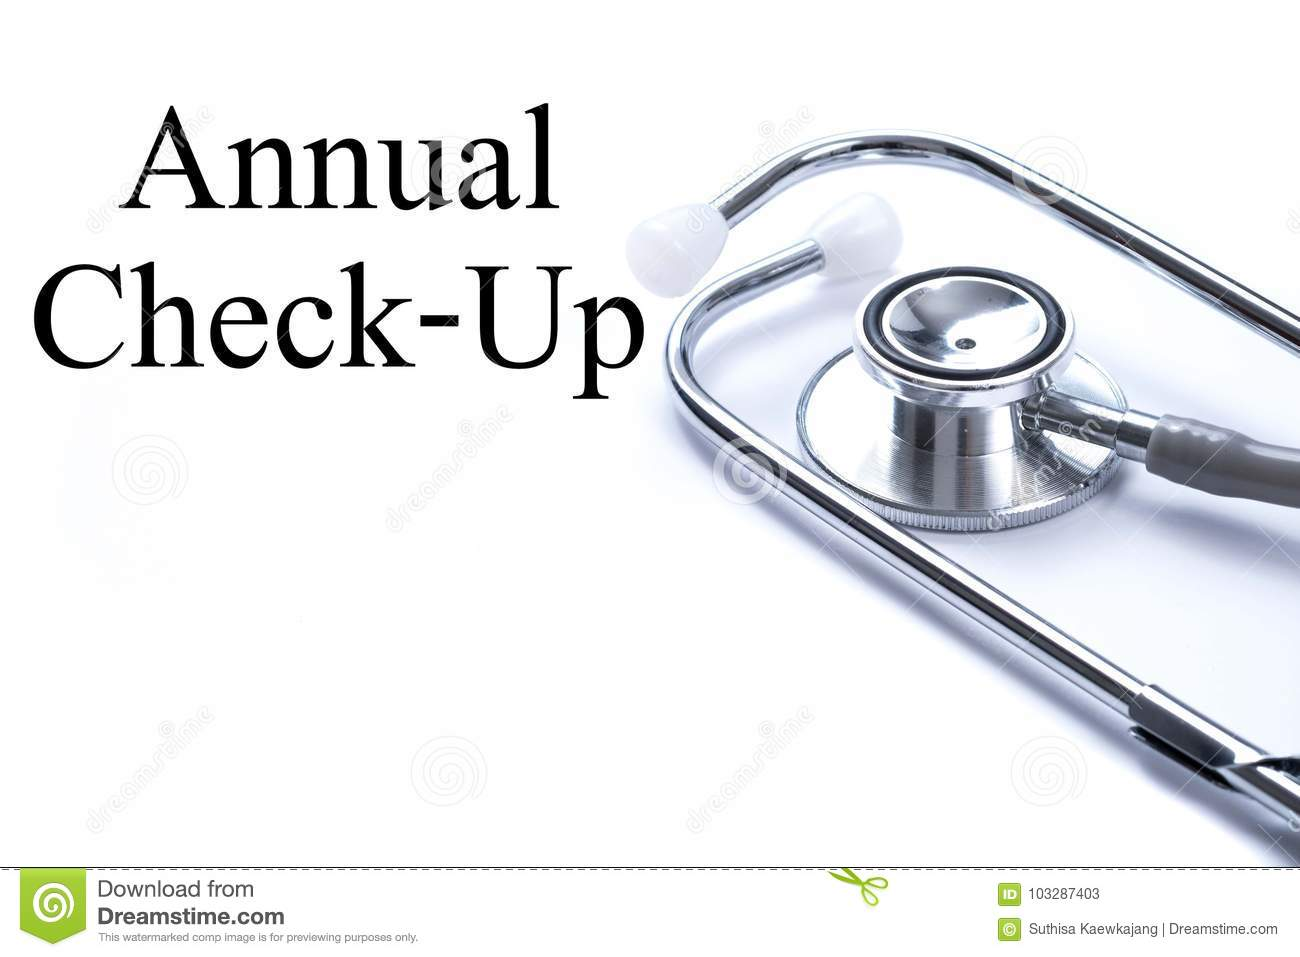 Annual doctor check up